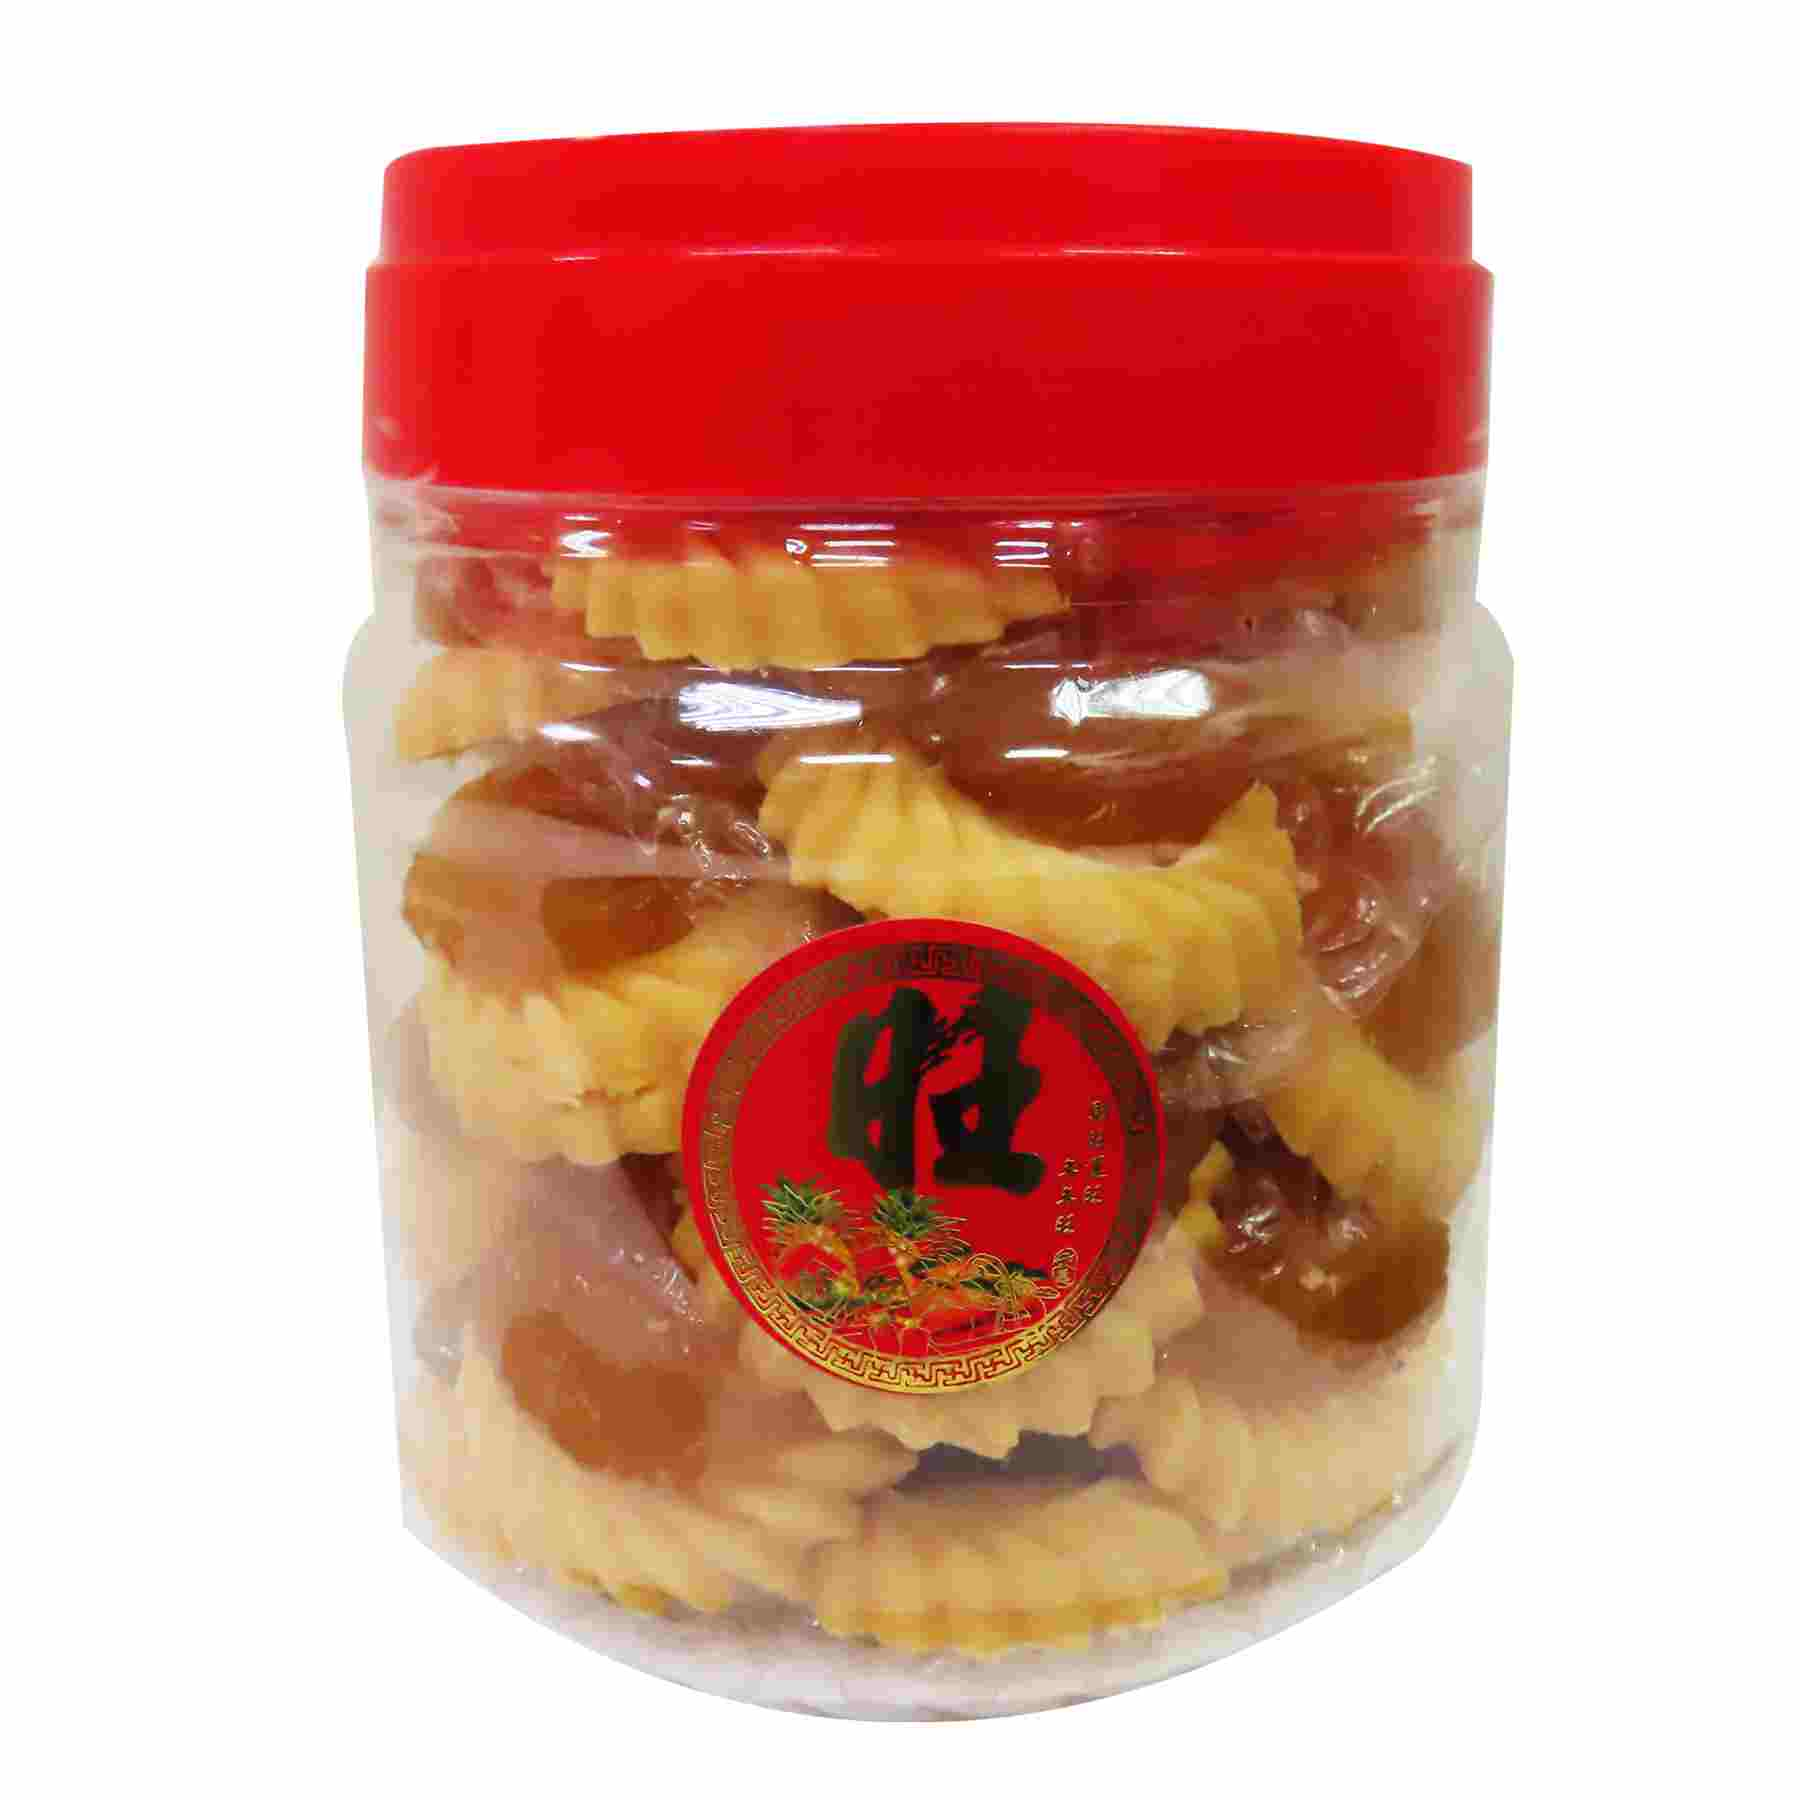 Image Pineapple Tart Pineapple tarts 黄梨达 350grams